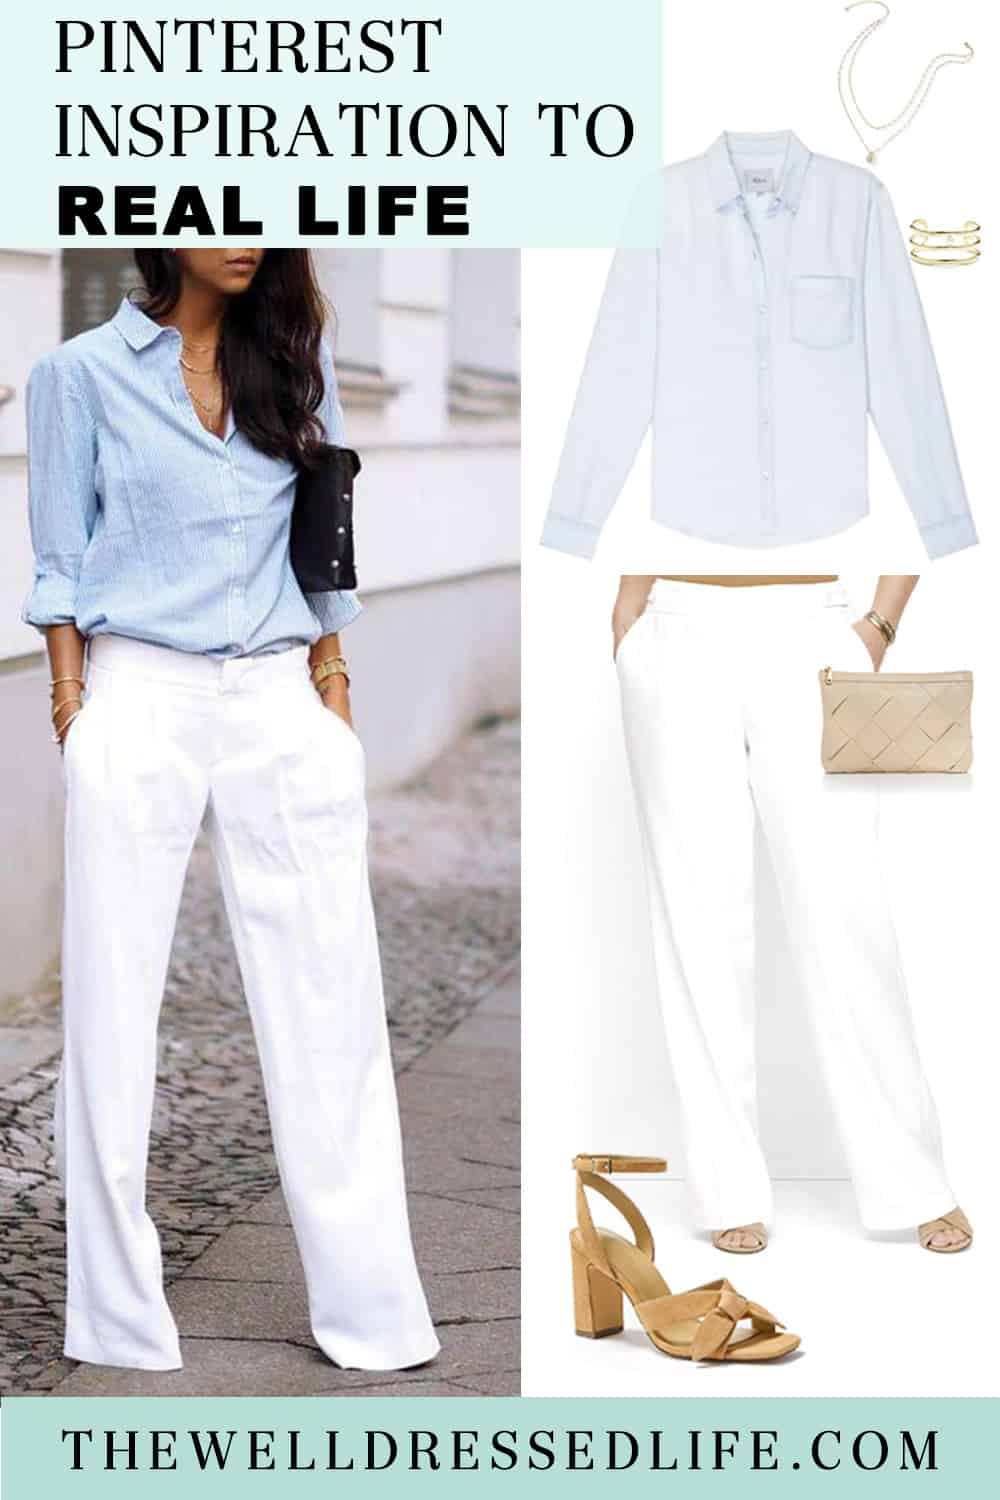 Pinterest in Real Life: Wide Leg White Pants